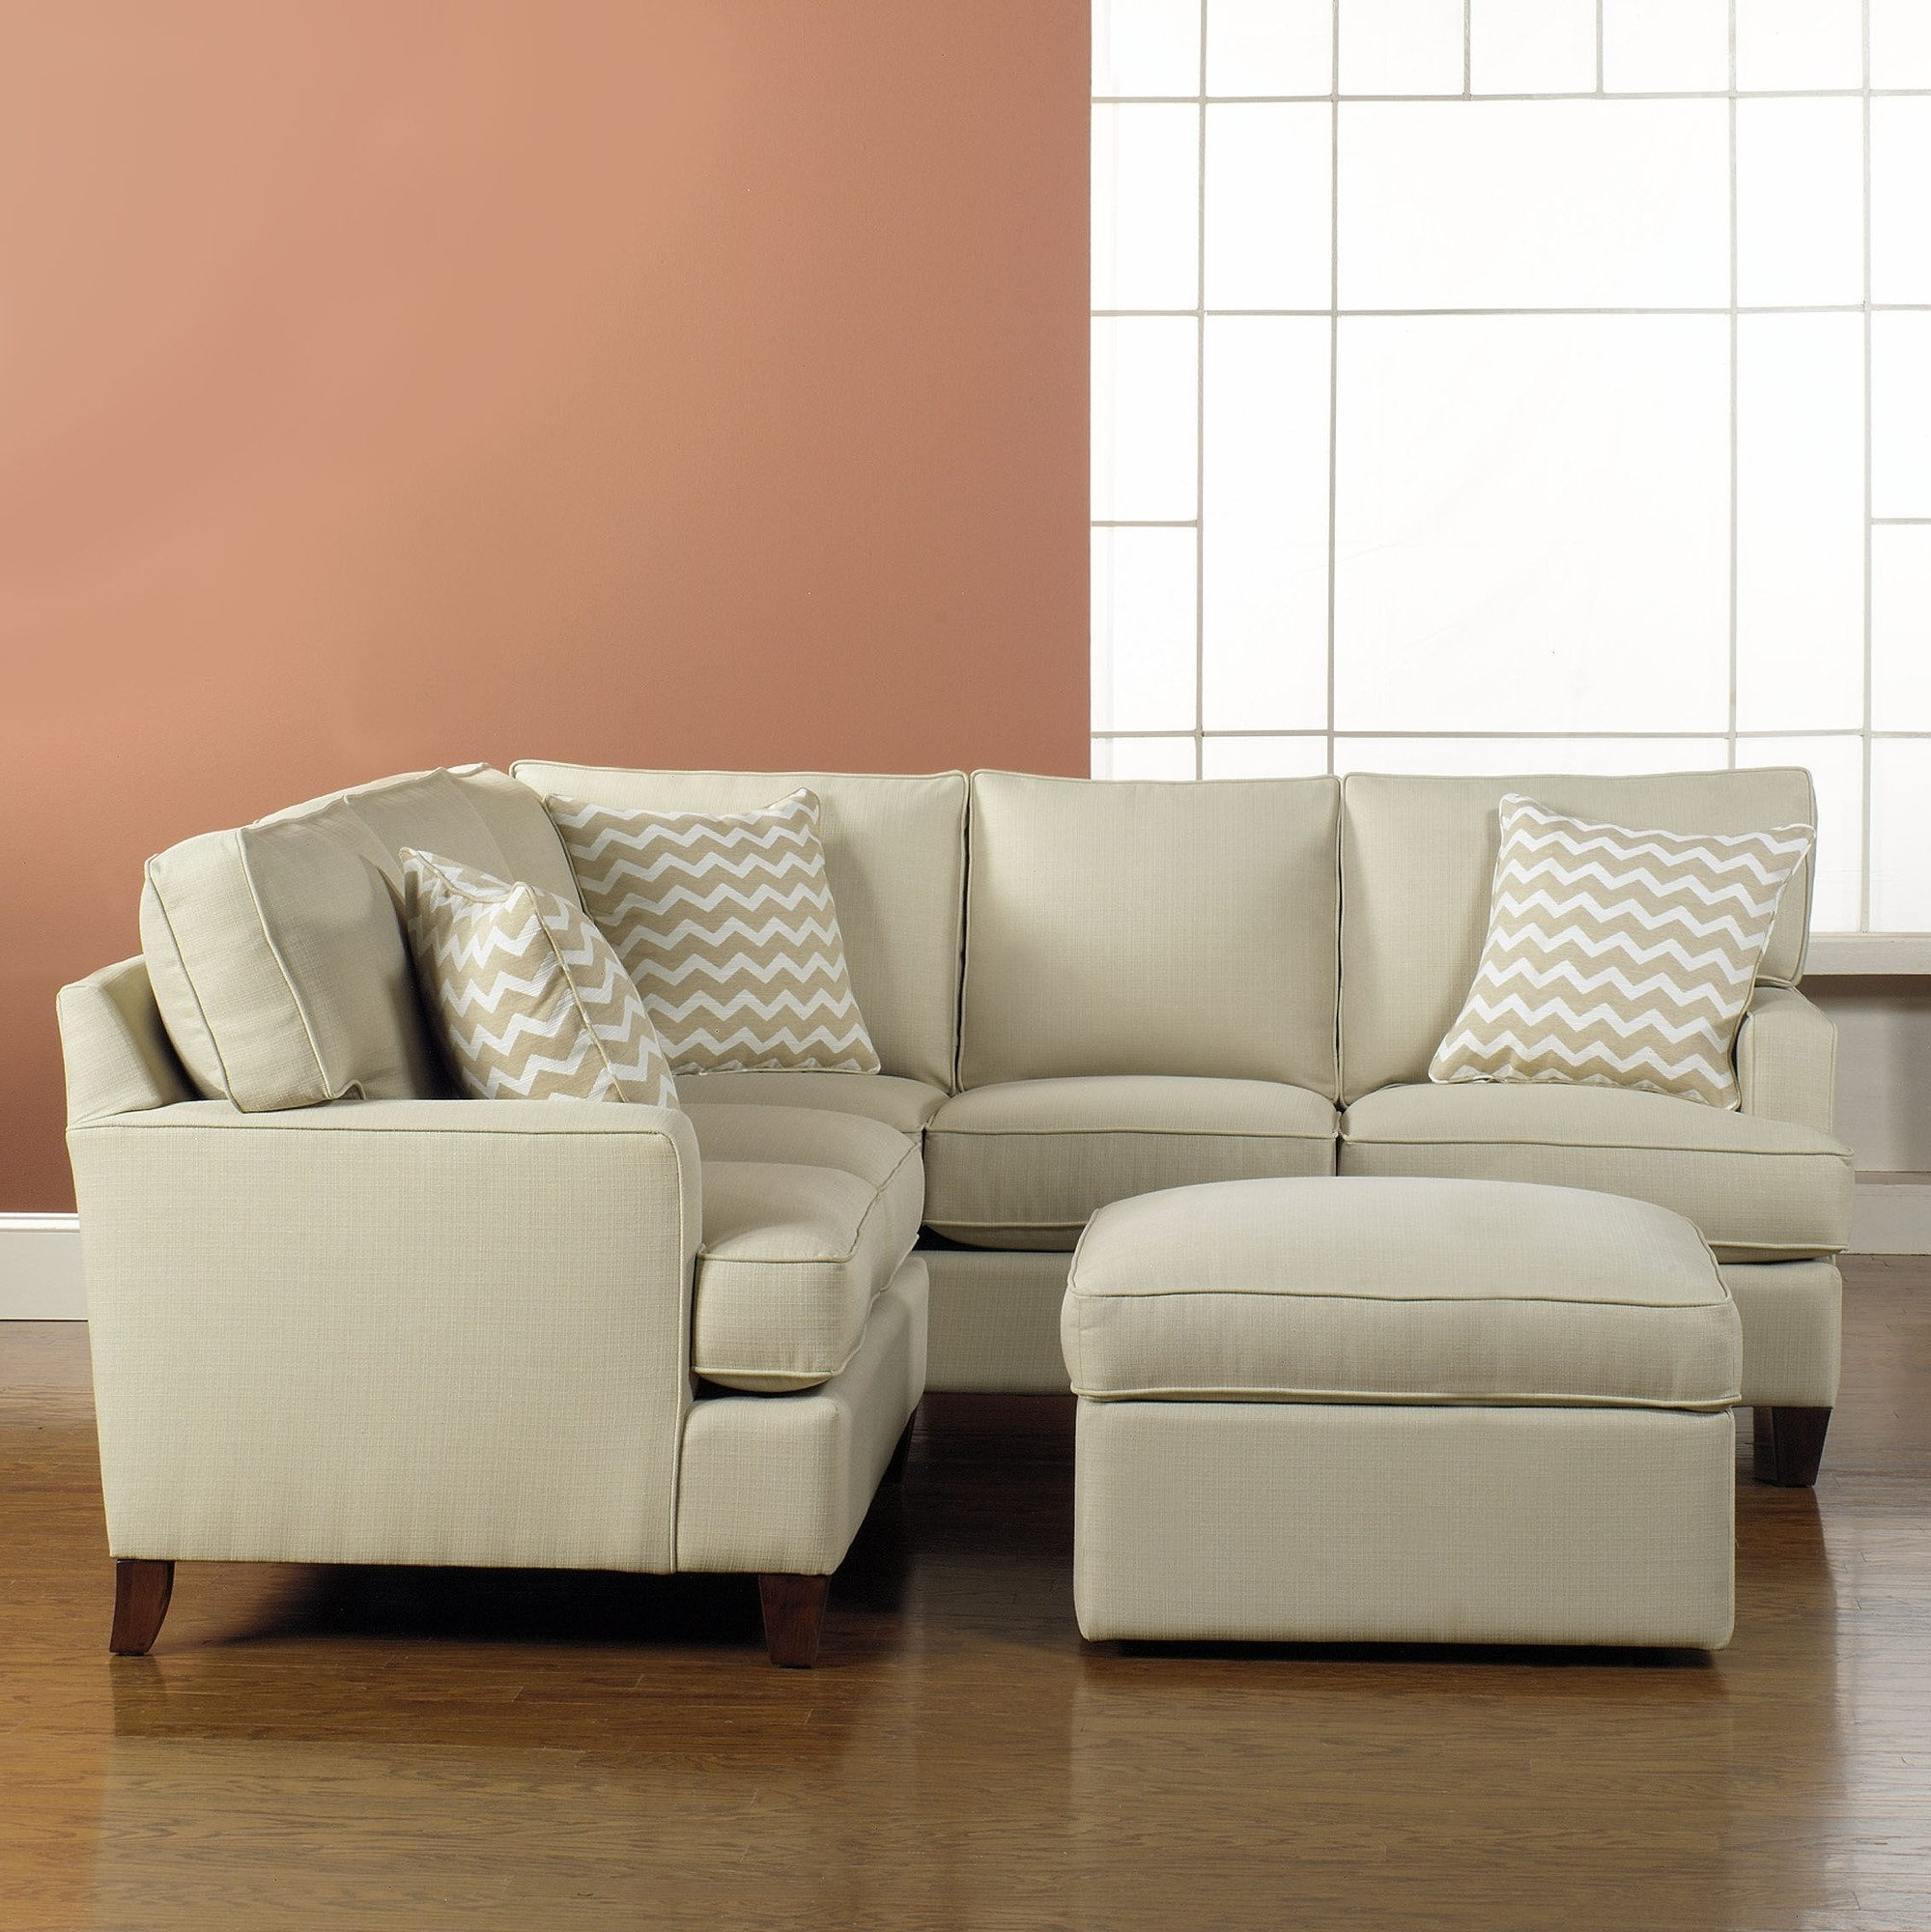 Small Sectionals With Chaise Within Most Up To Date Apartment Sized Furniture Living Room Small Sectional Sofa Cheap (View 11 of 15)